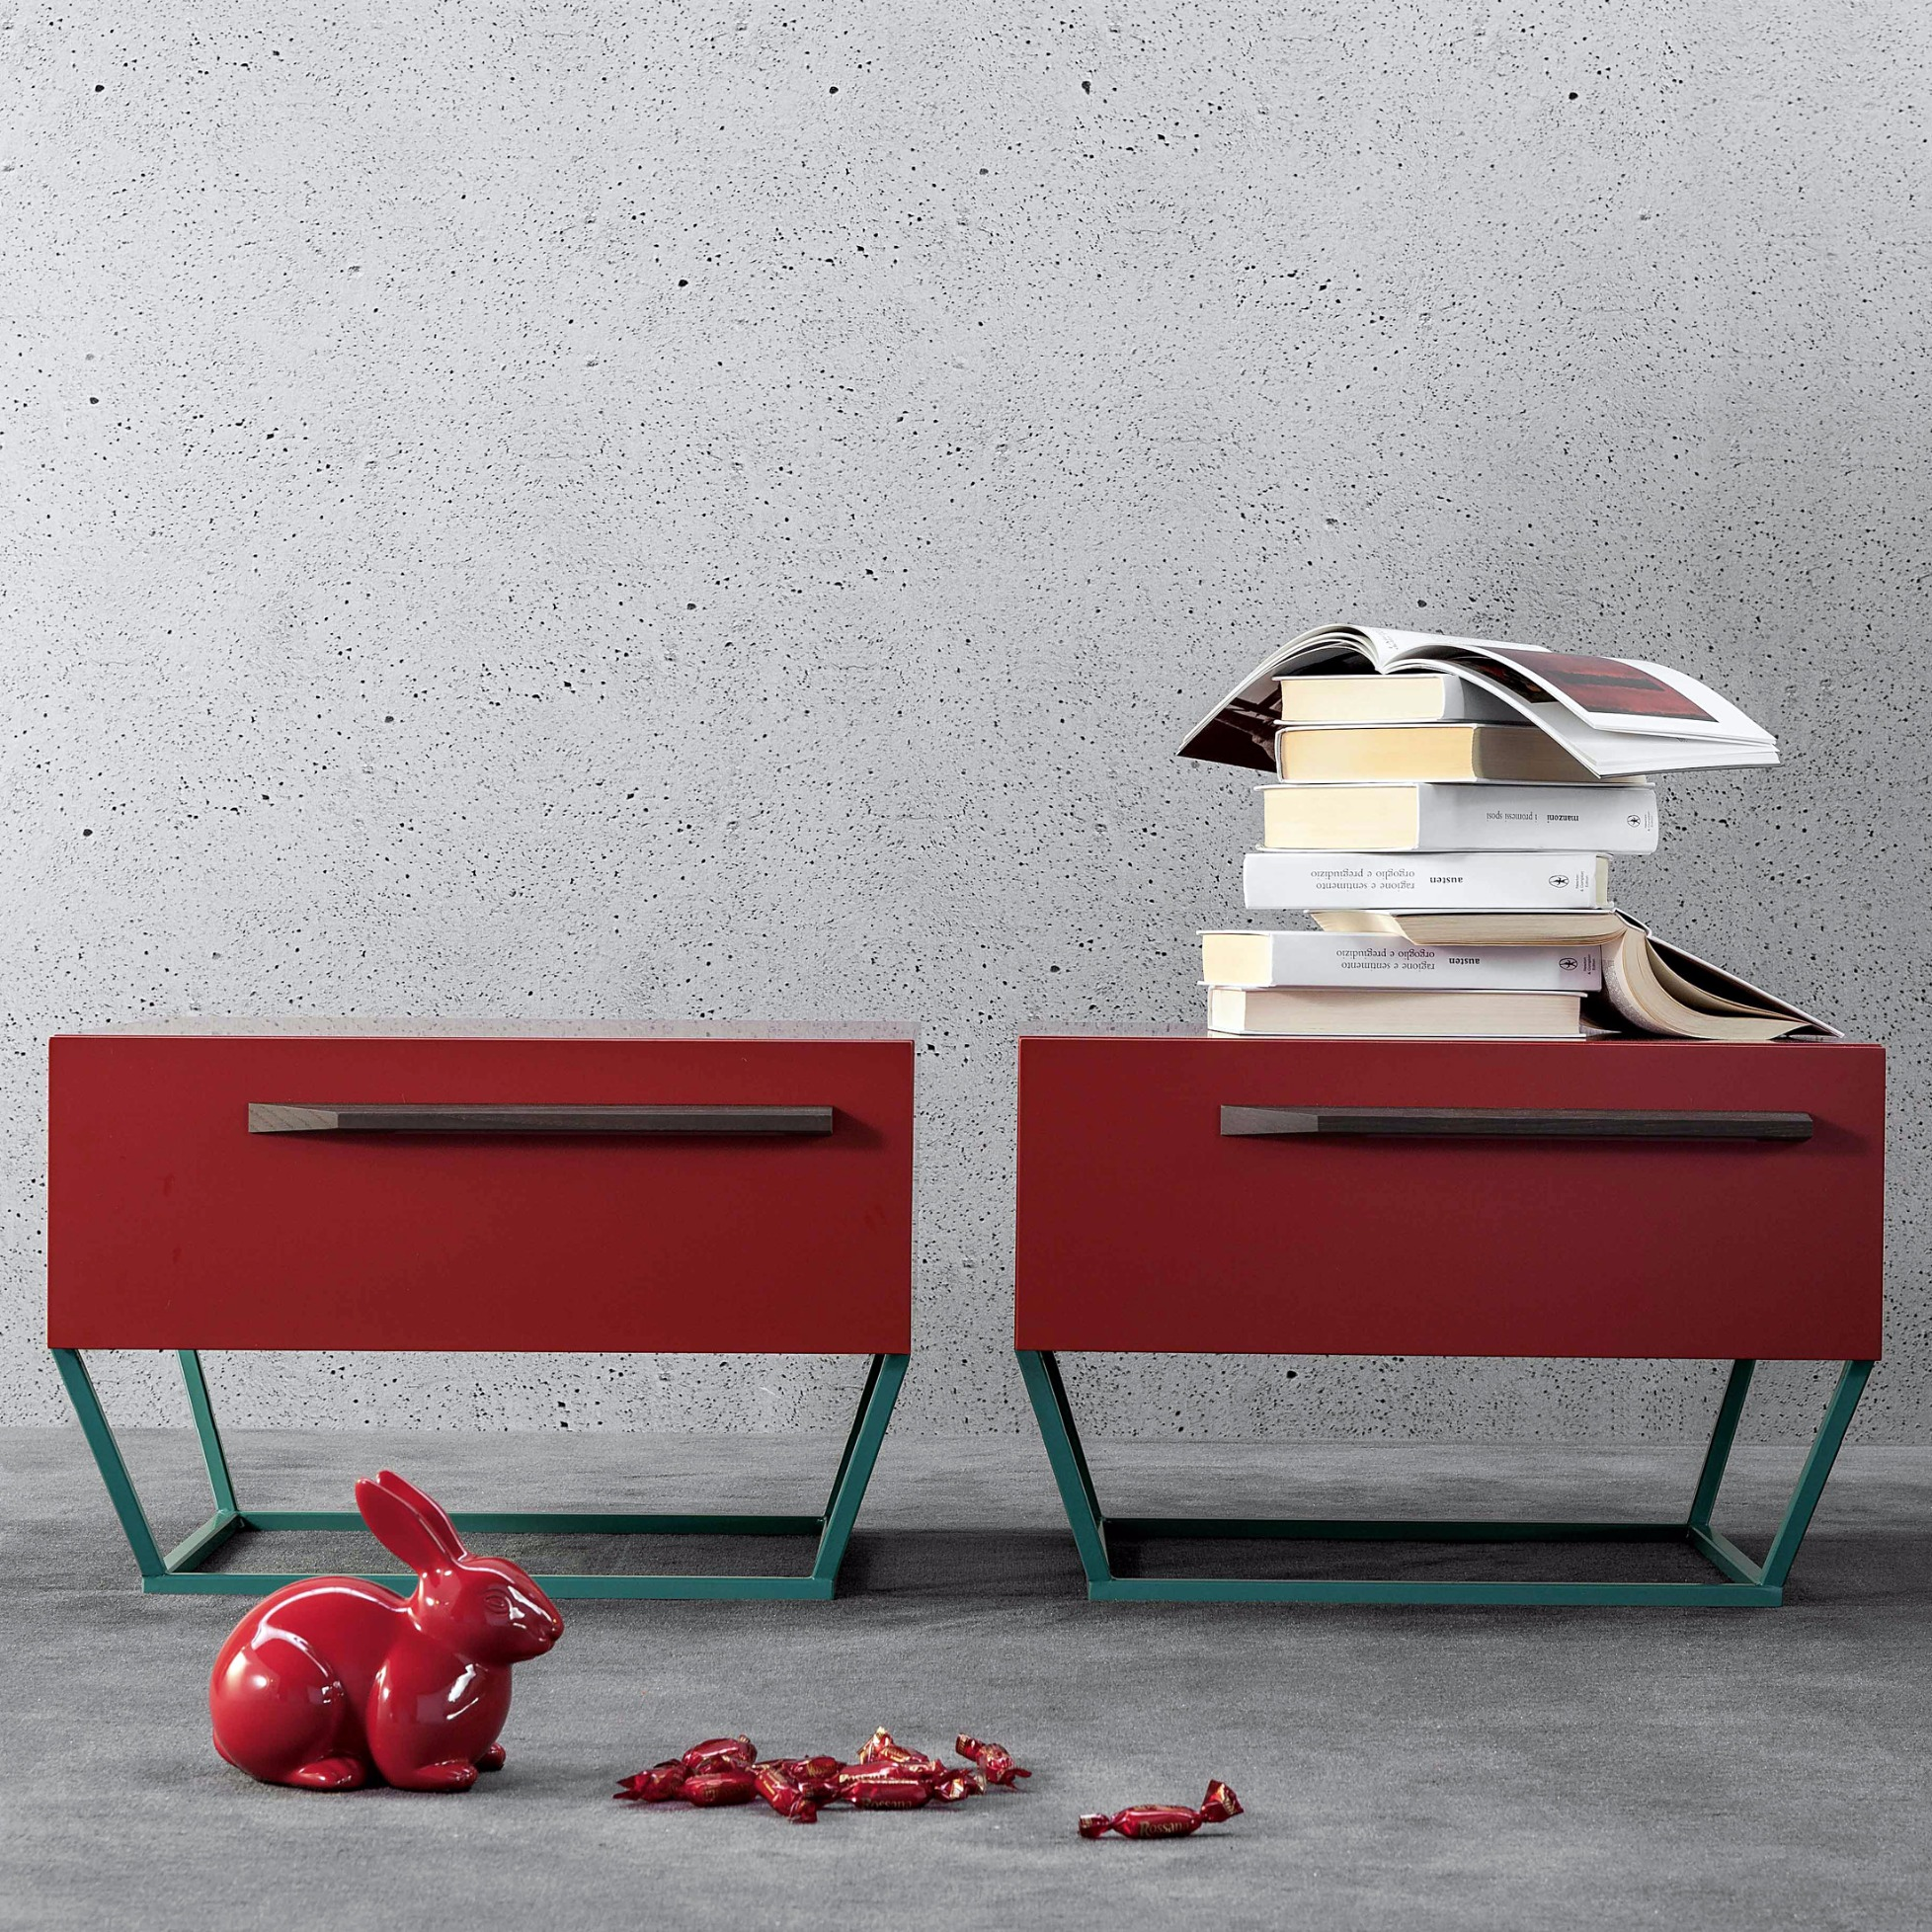 Bedside Table To Be With Trapezoidal Base By Bonaldo